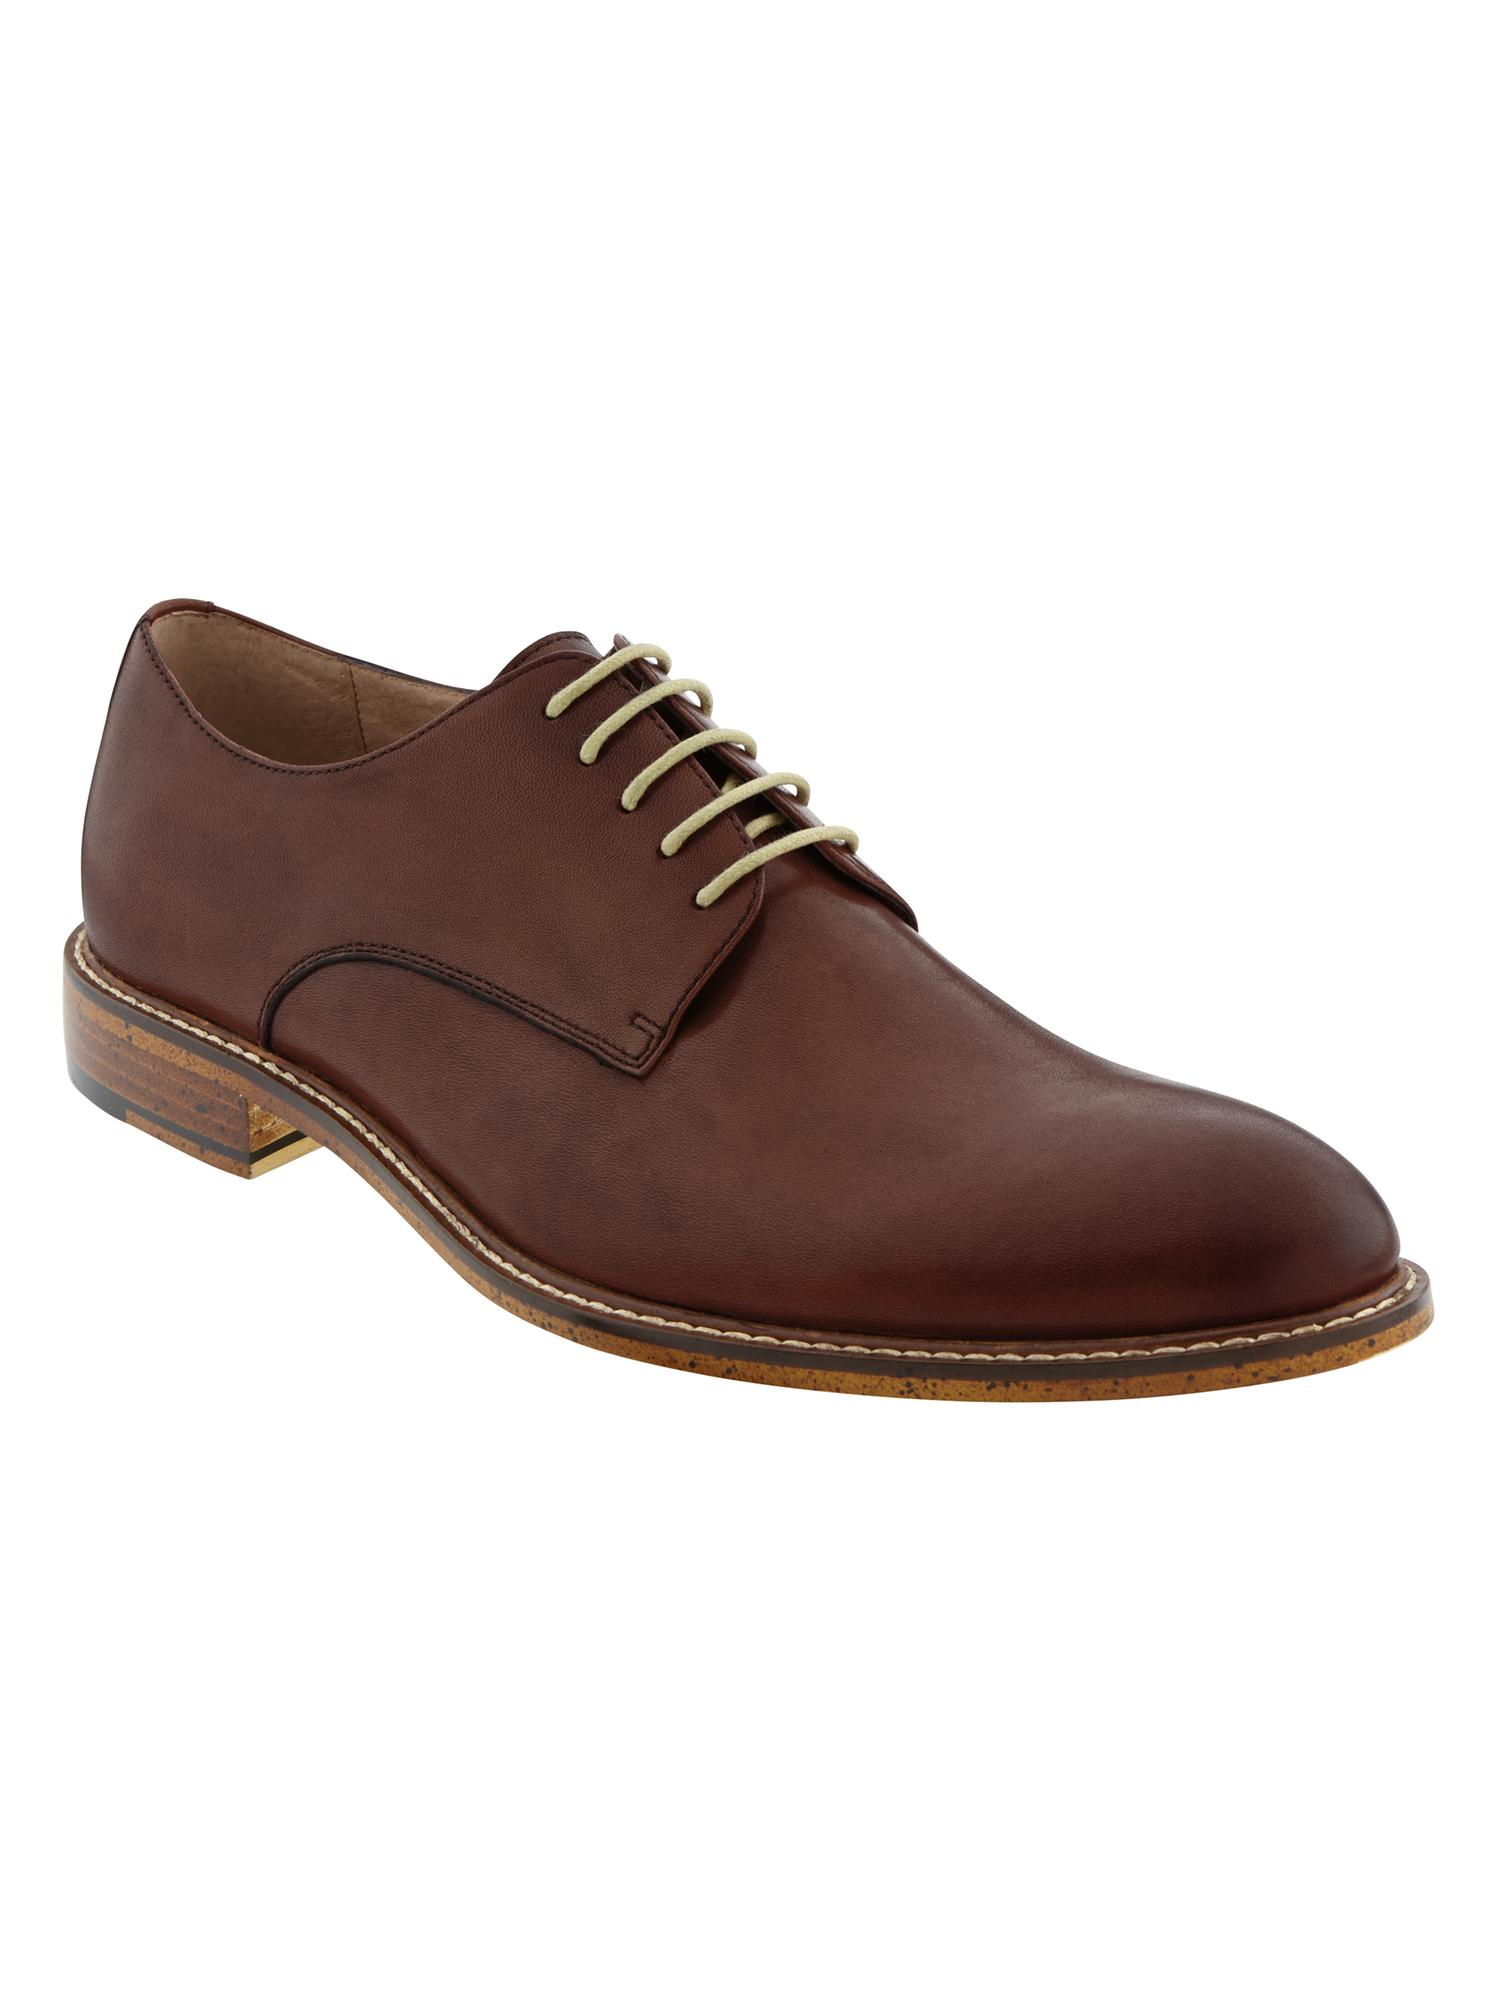 New Republic Mens Shoes Sizing